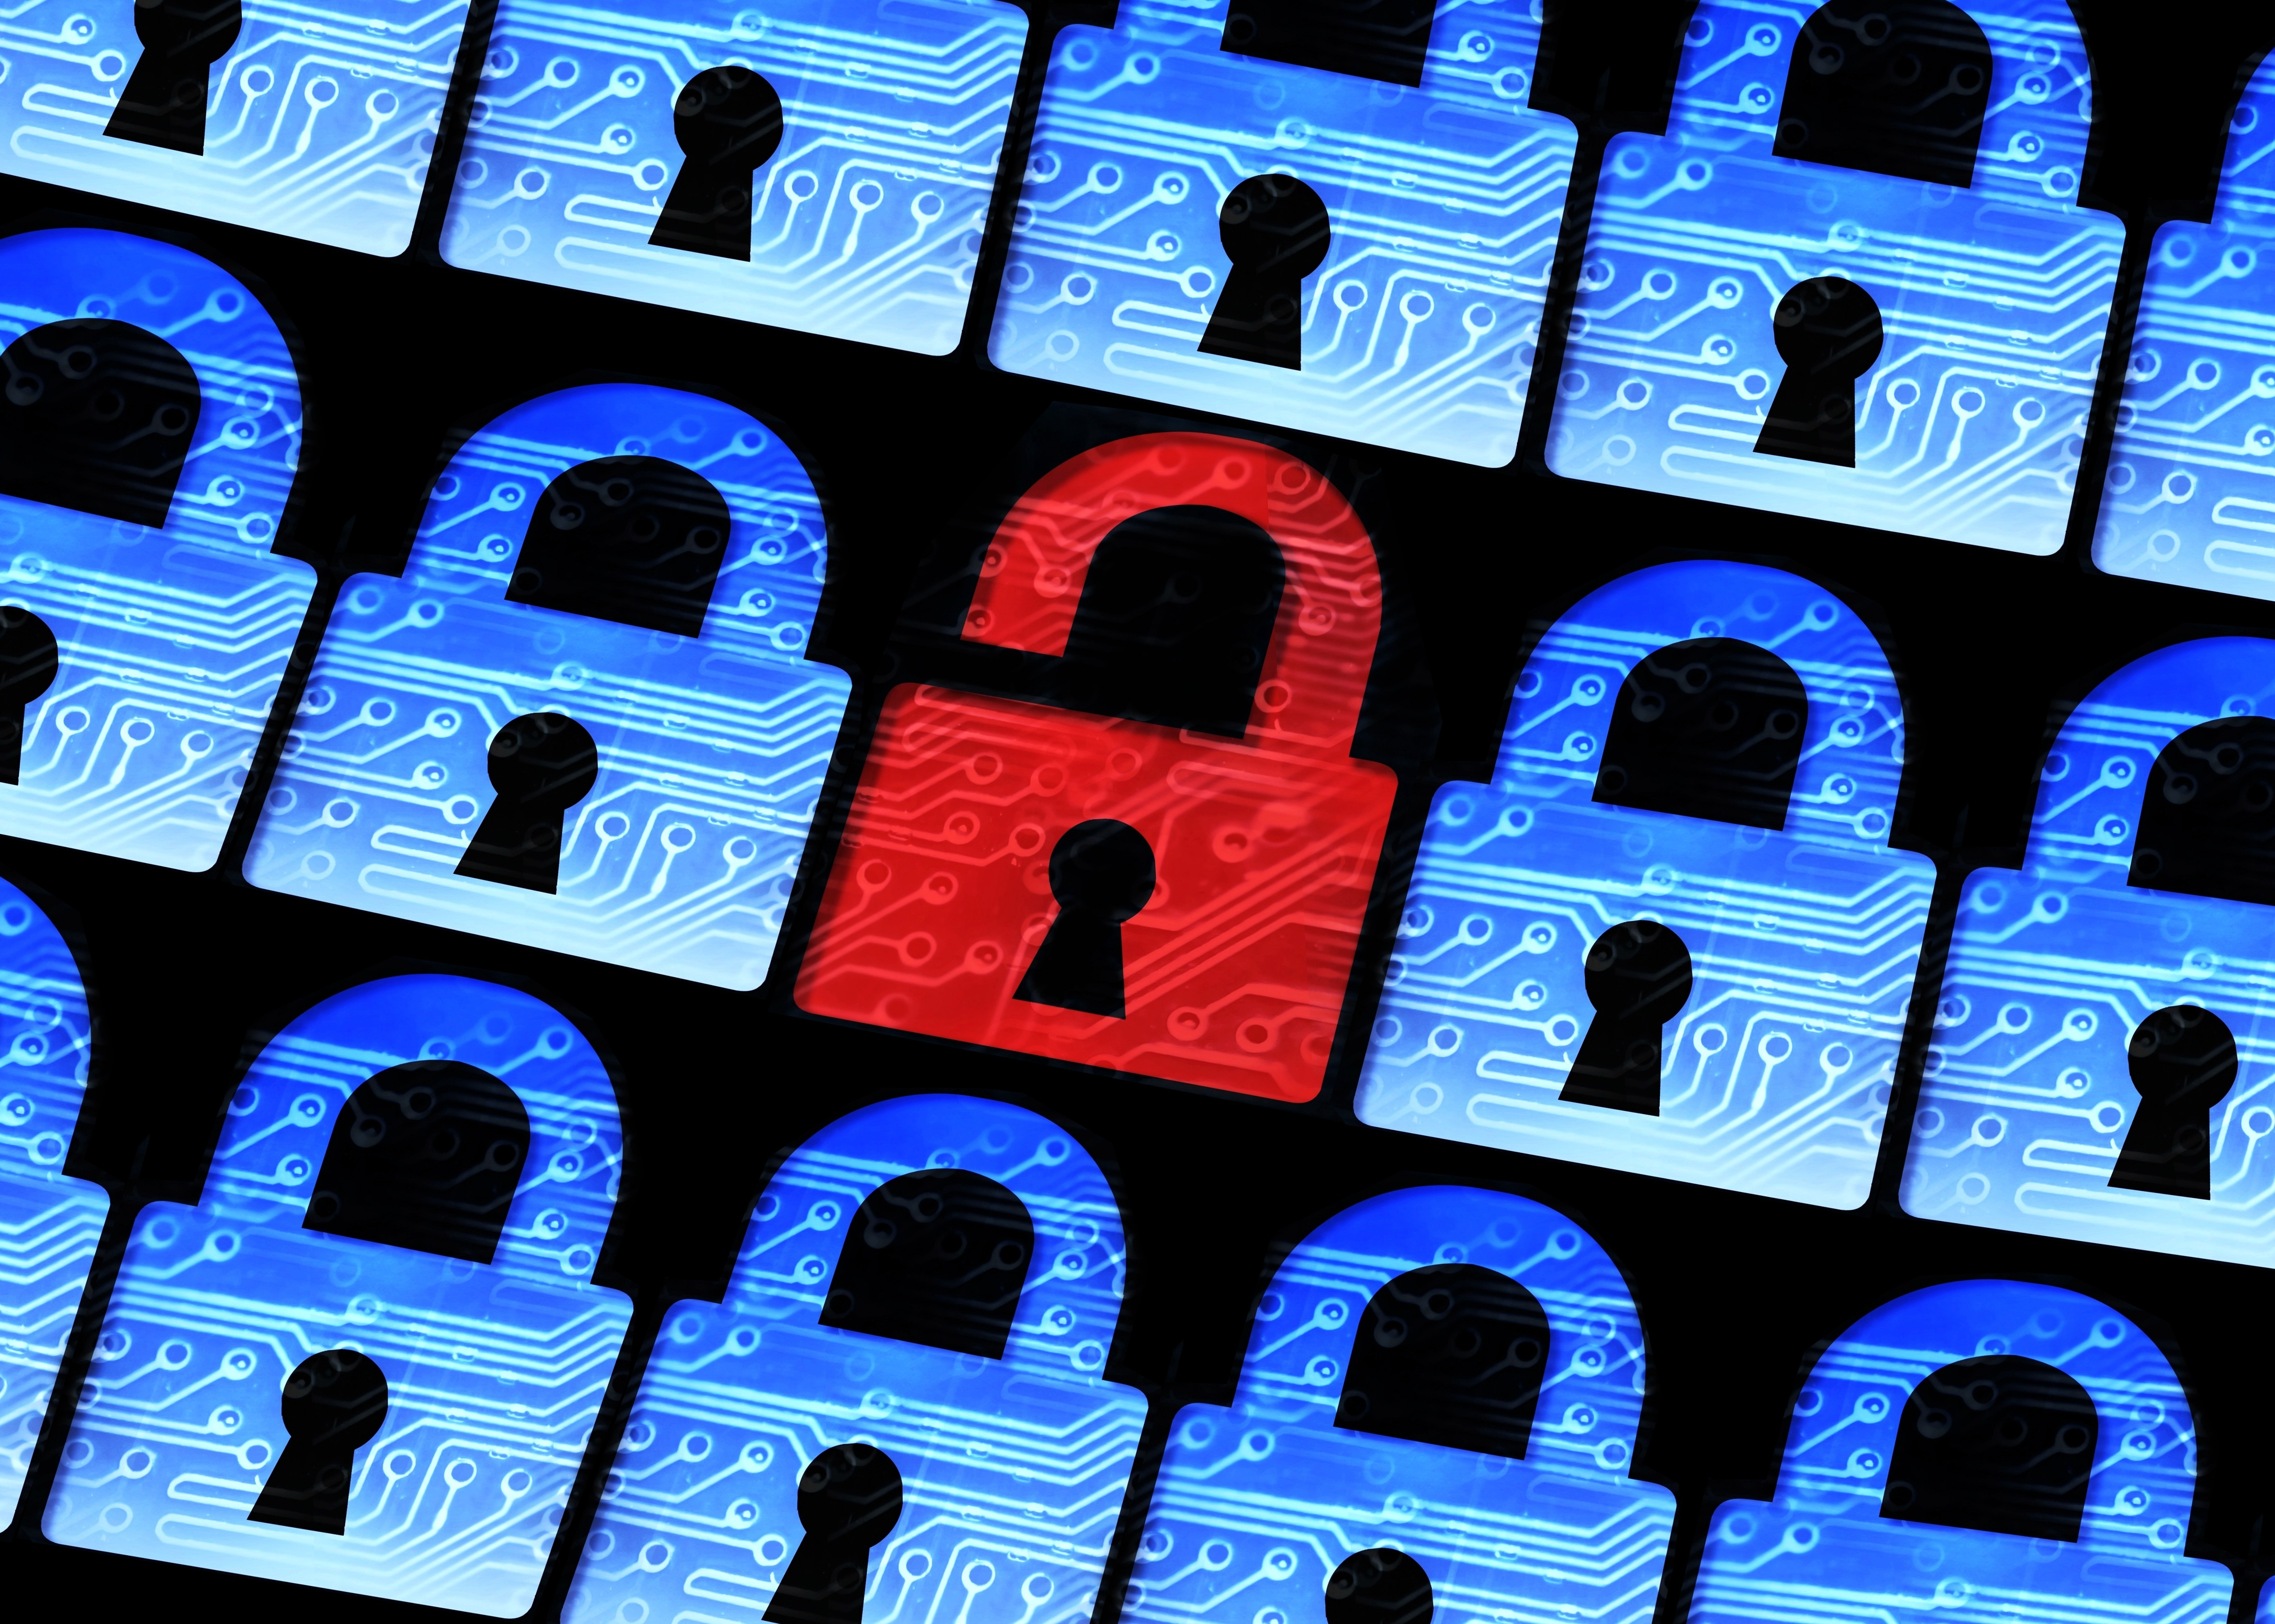 Growth in Data Breaches Shows Need for Government Regulations